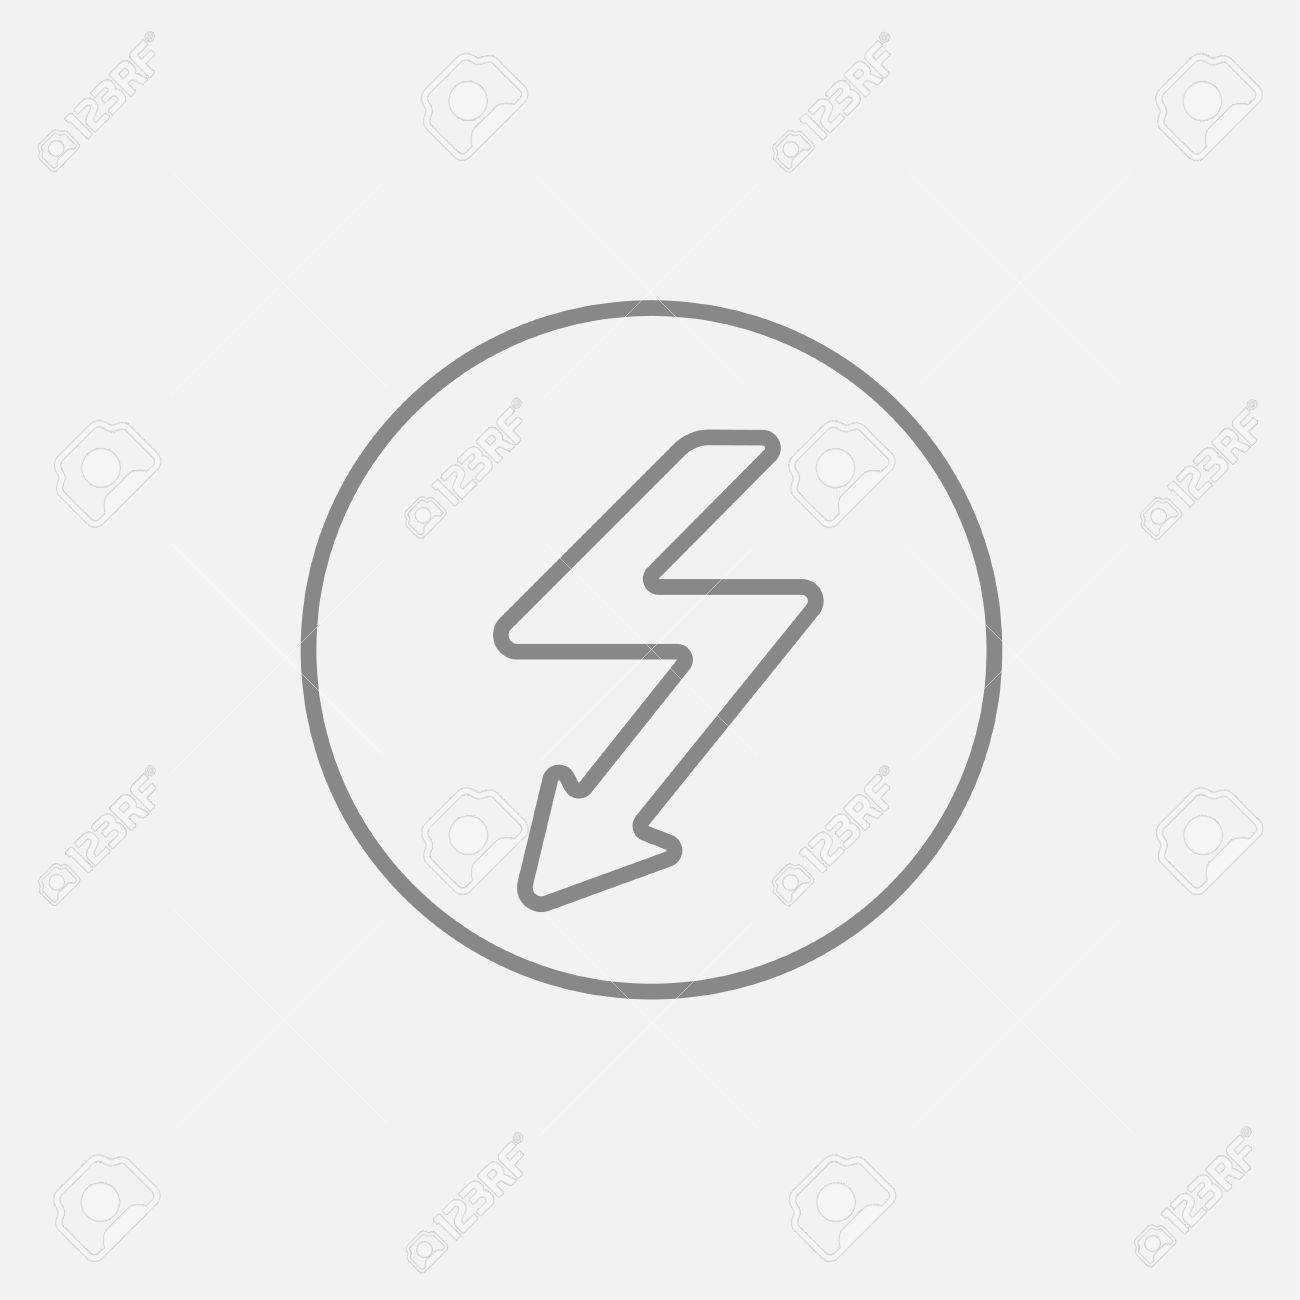 Lightning arrow going down inside circle line icon for web, mobile